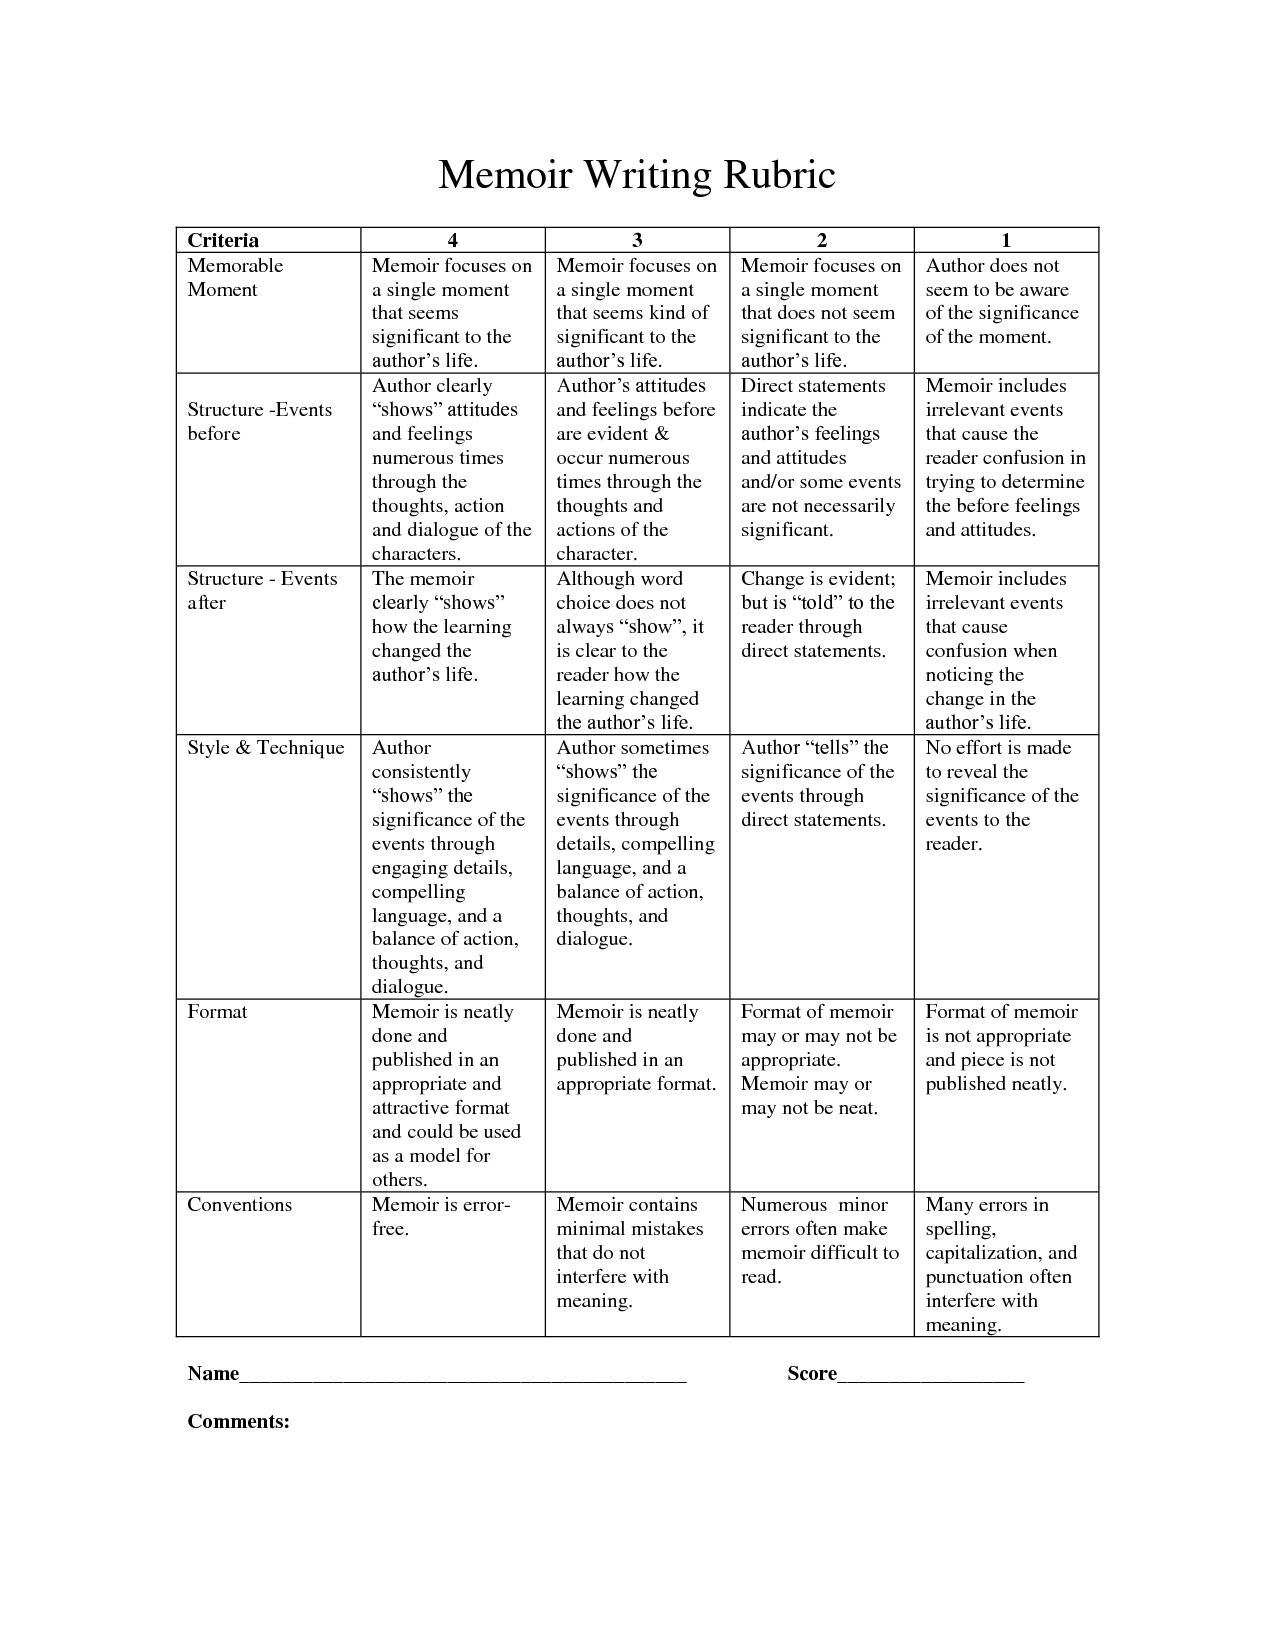 memoir writing rubric doc memoirs memoirs explore autobiography writing memoir writing and more